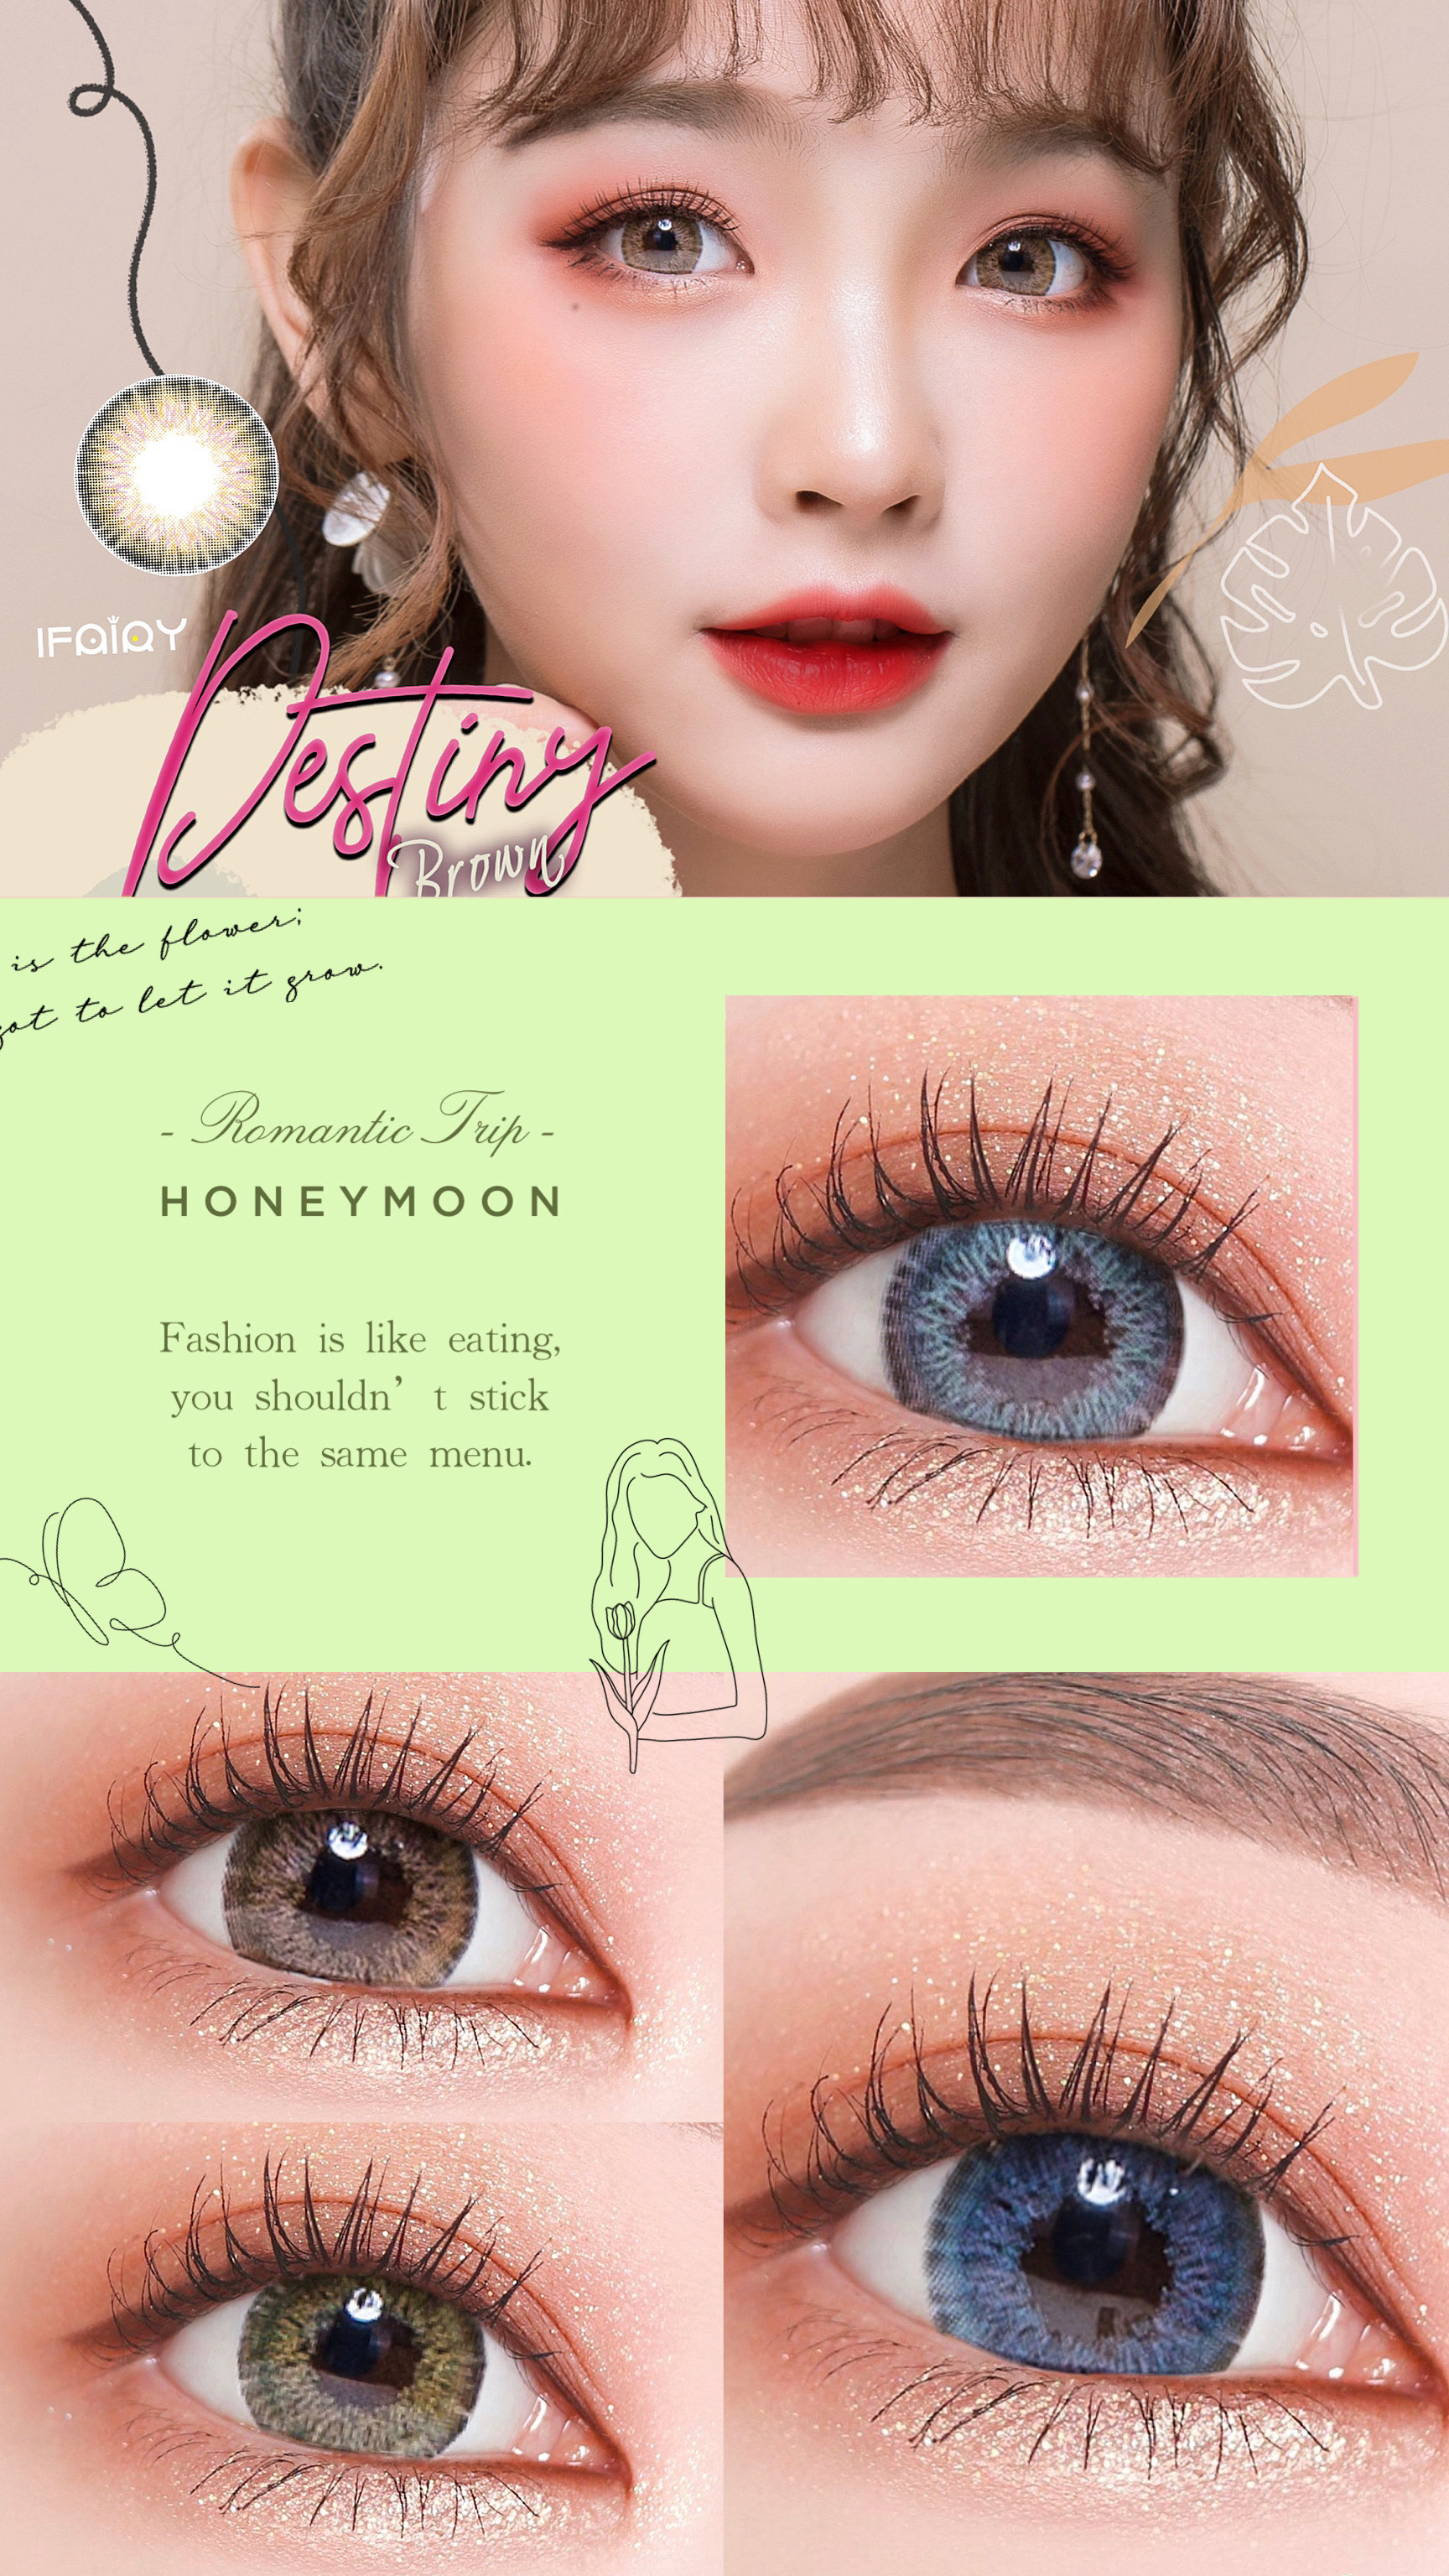 i.fairy destiny , ifairy destiny grey, color contact lens, ifairy destiny color contact lens, ttdeye, pinkyparadise, color contacts